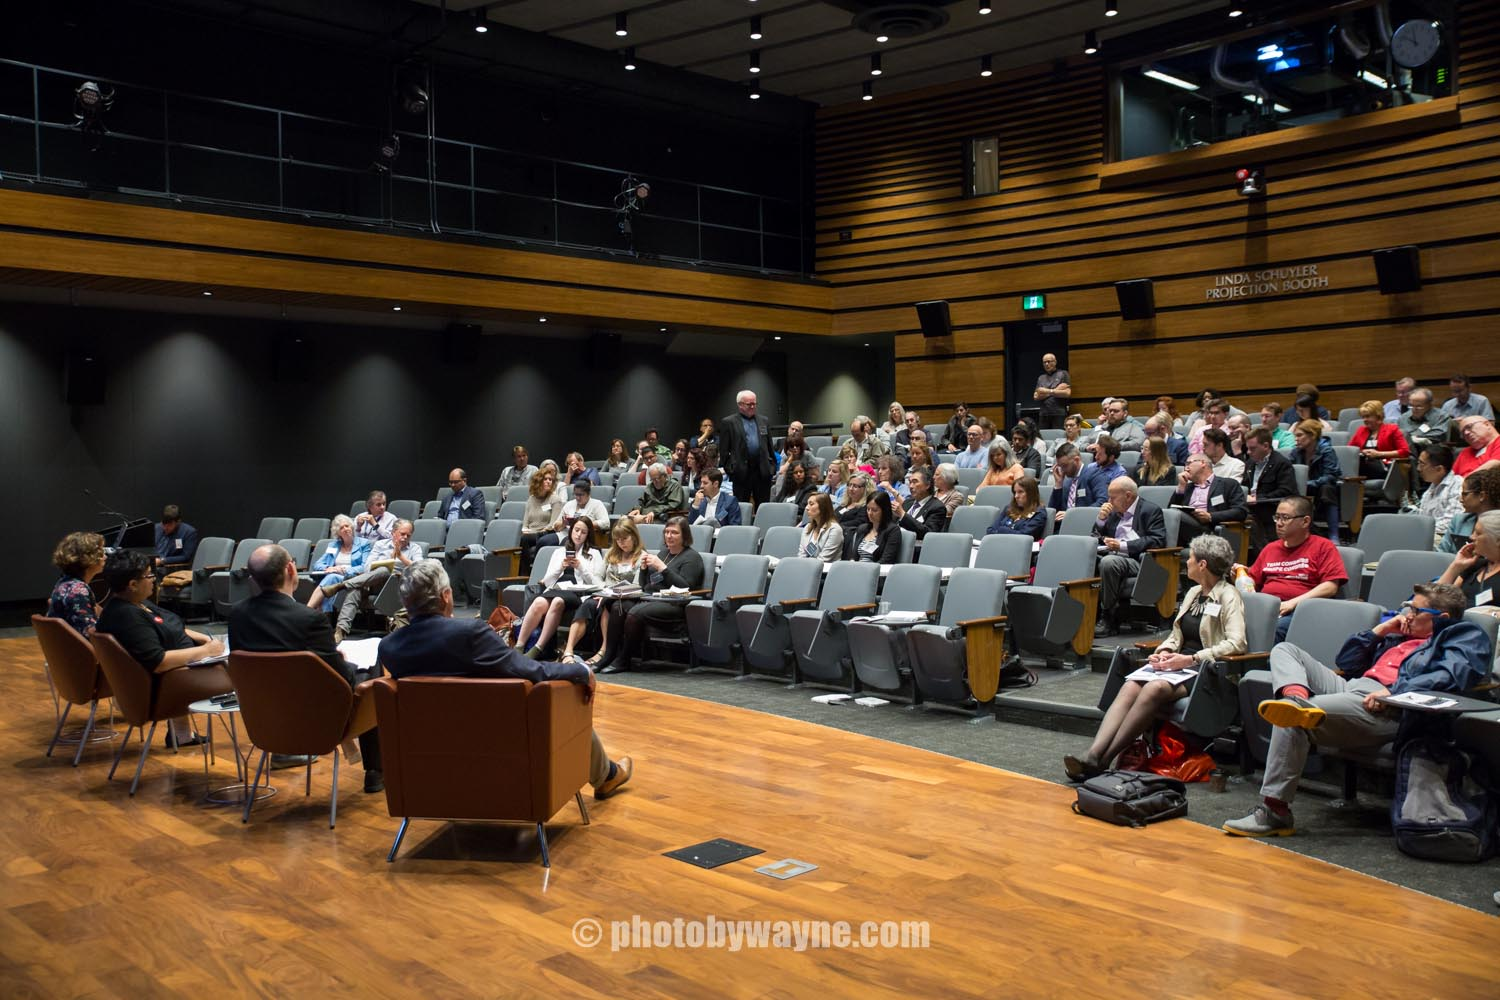 14-basic-income-guarantee-conference-photography.jpg